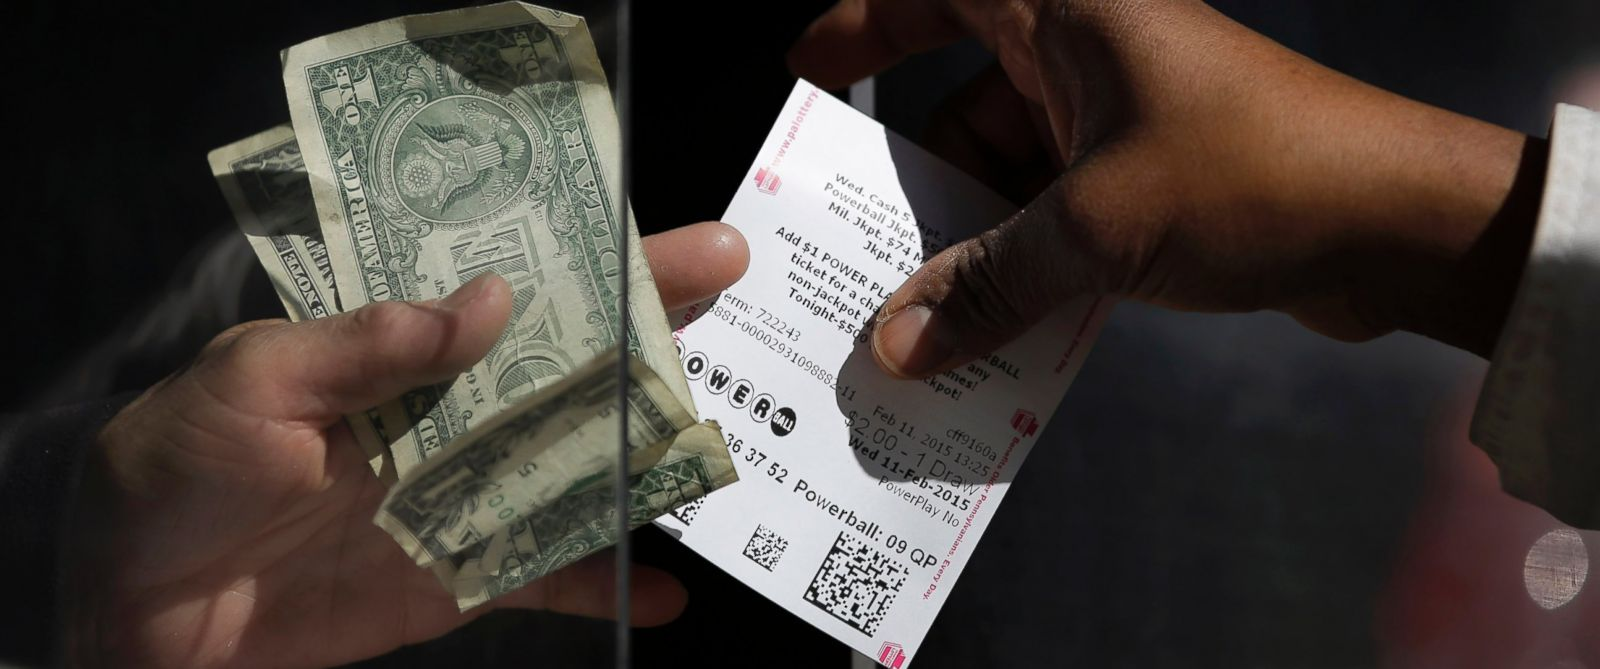 PHOTO: A woman buys a Powerball ticket at a newsstand, Feb. 11, 2015, in Philadelphia.